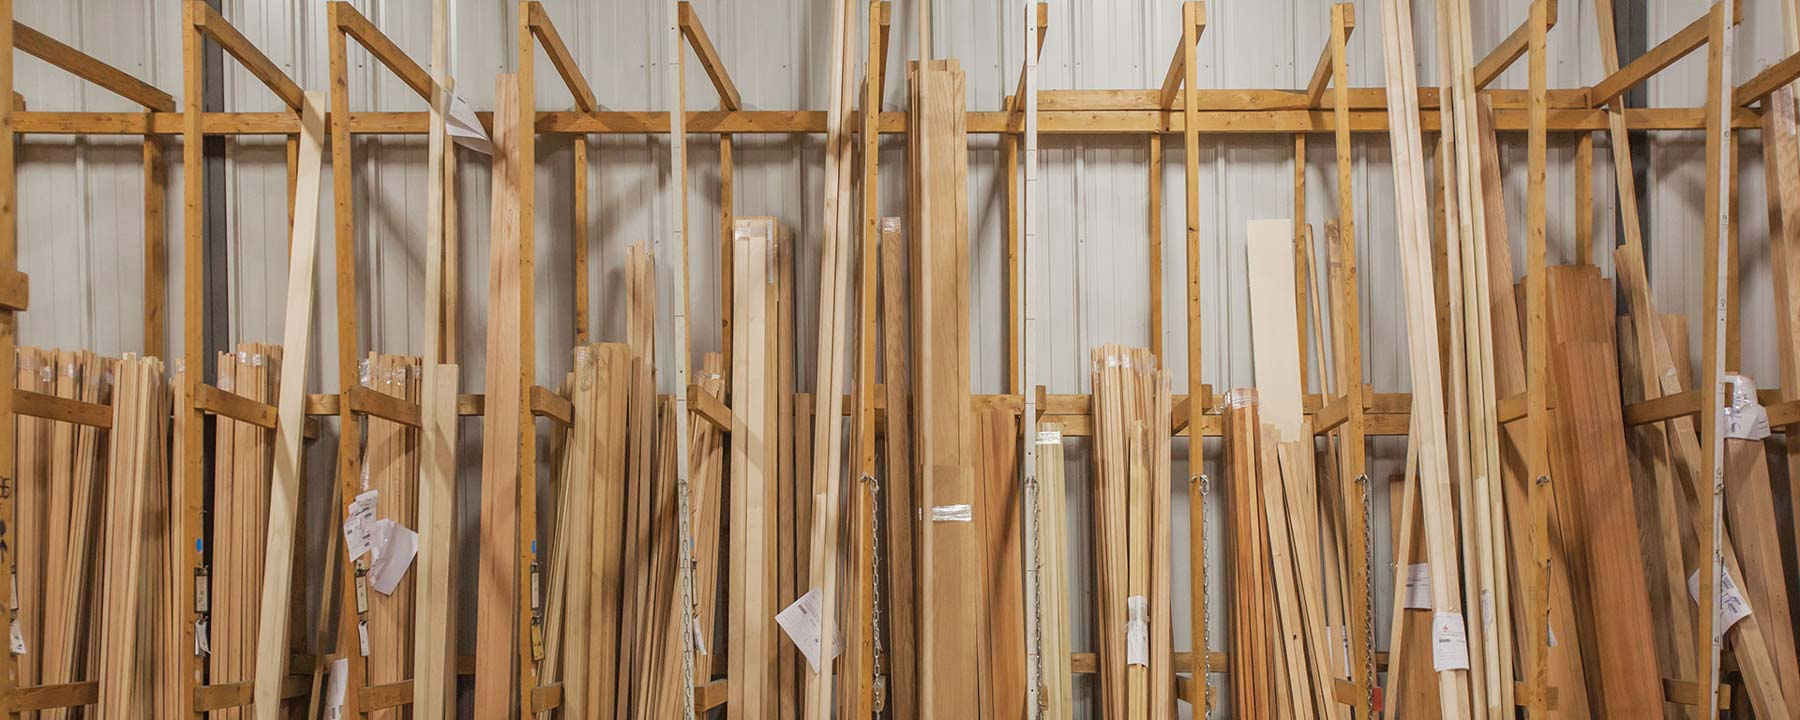 bins of long, untreated wood mouldings standing vertically